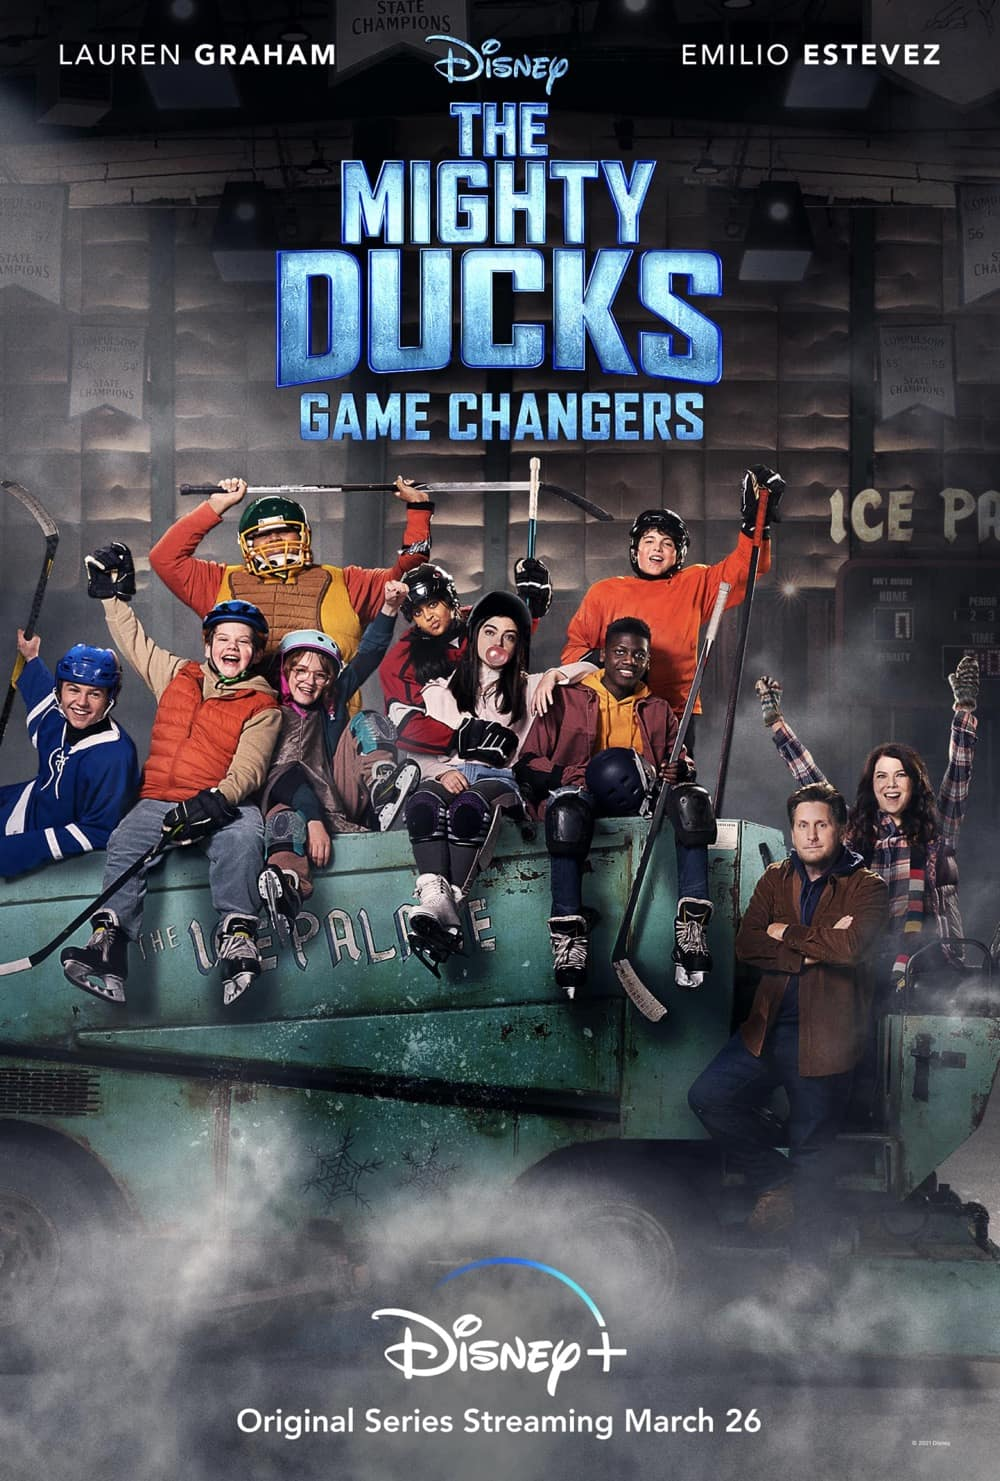 The Mighty Ducks Game Changers Poster Key Art | Disney+